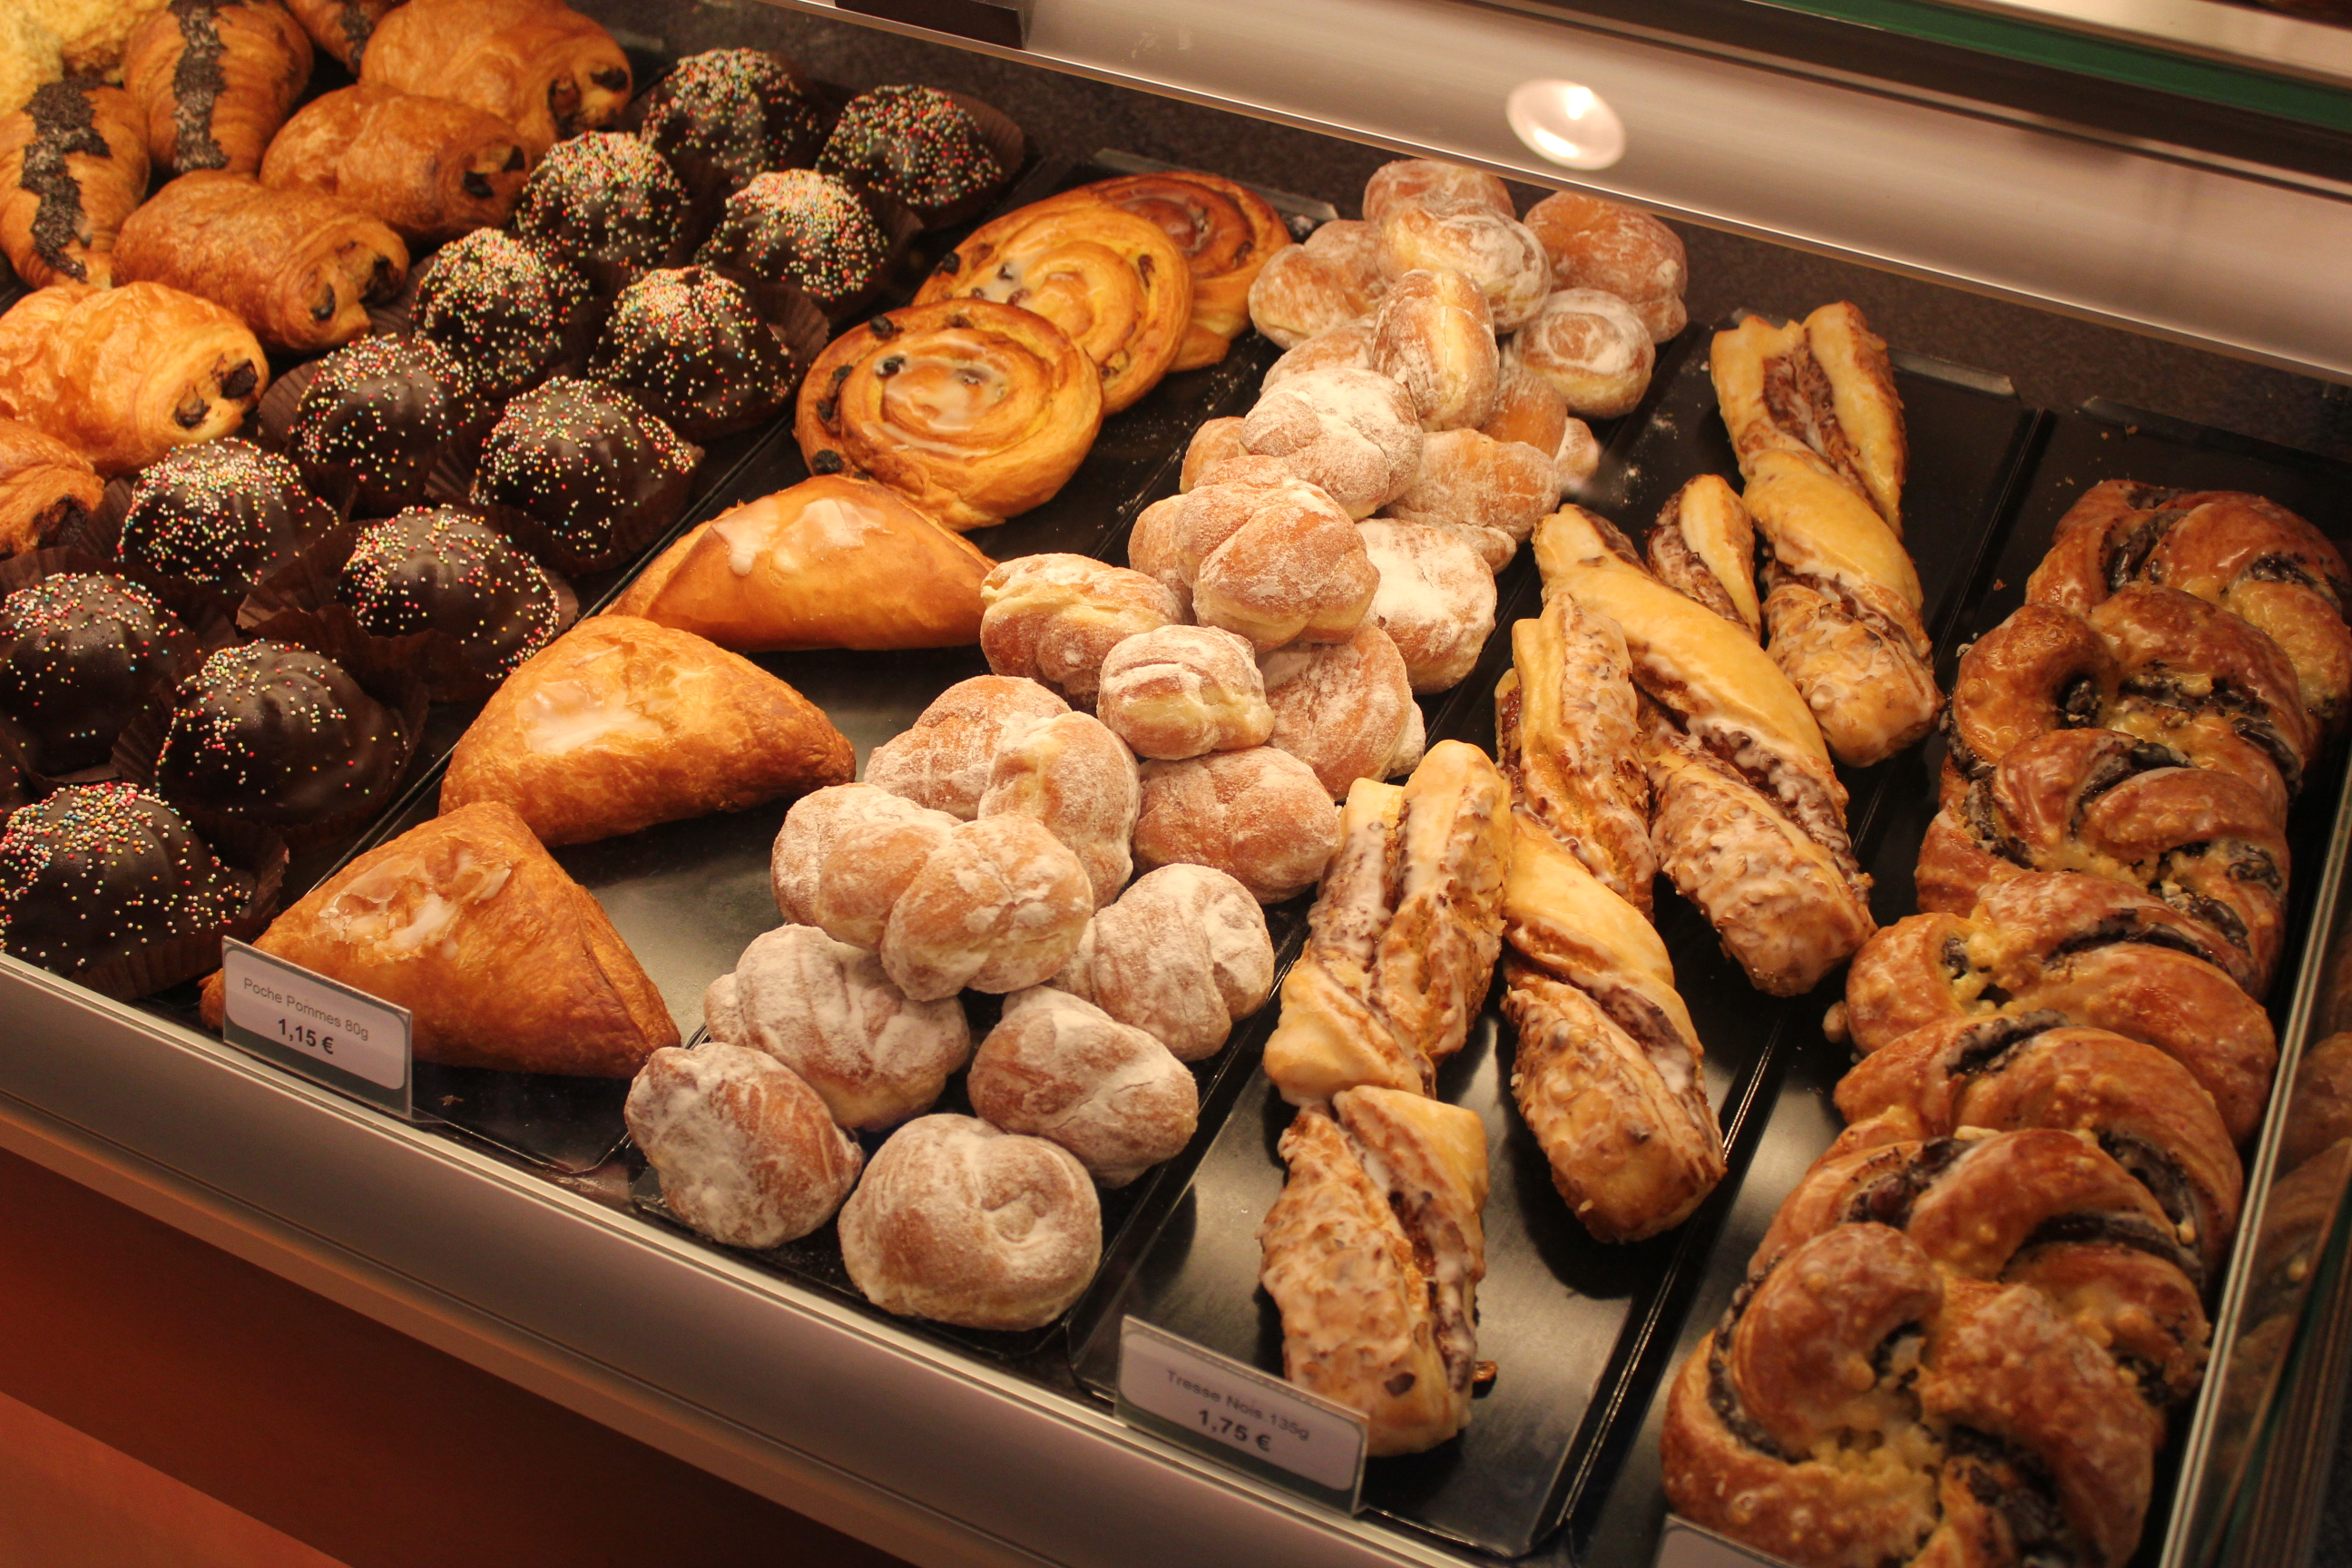 More Pastries; Luxembourg City, Luxembourg; 2012